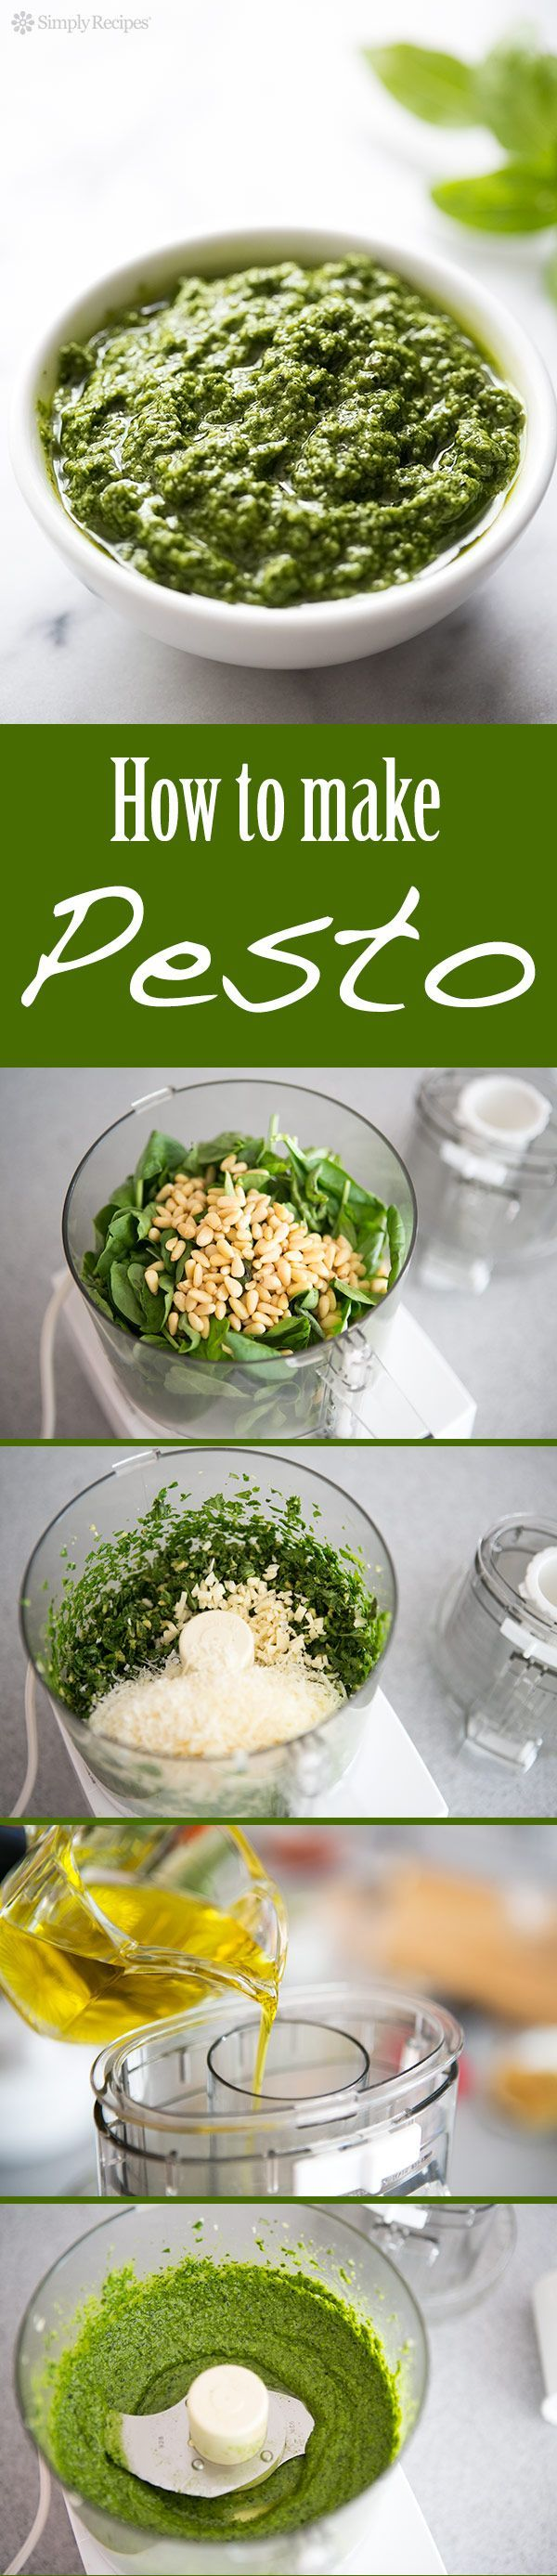 Make your own homemade pesto. It's easy! Great for adding to pasta, chicken, even toast. With fresh basil leaves, pine nuts, garlic, Romano or Parmesan cheese, and olive oil.